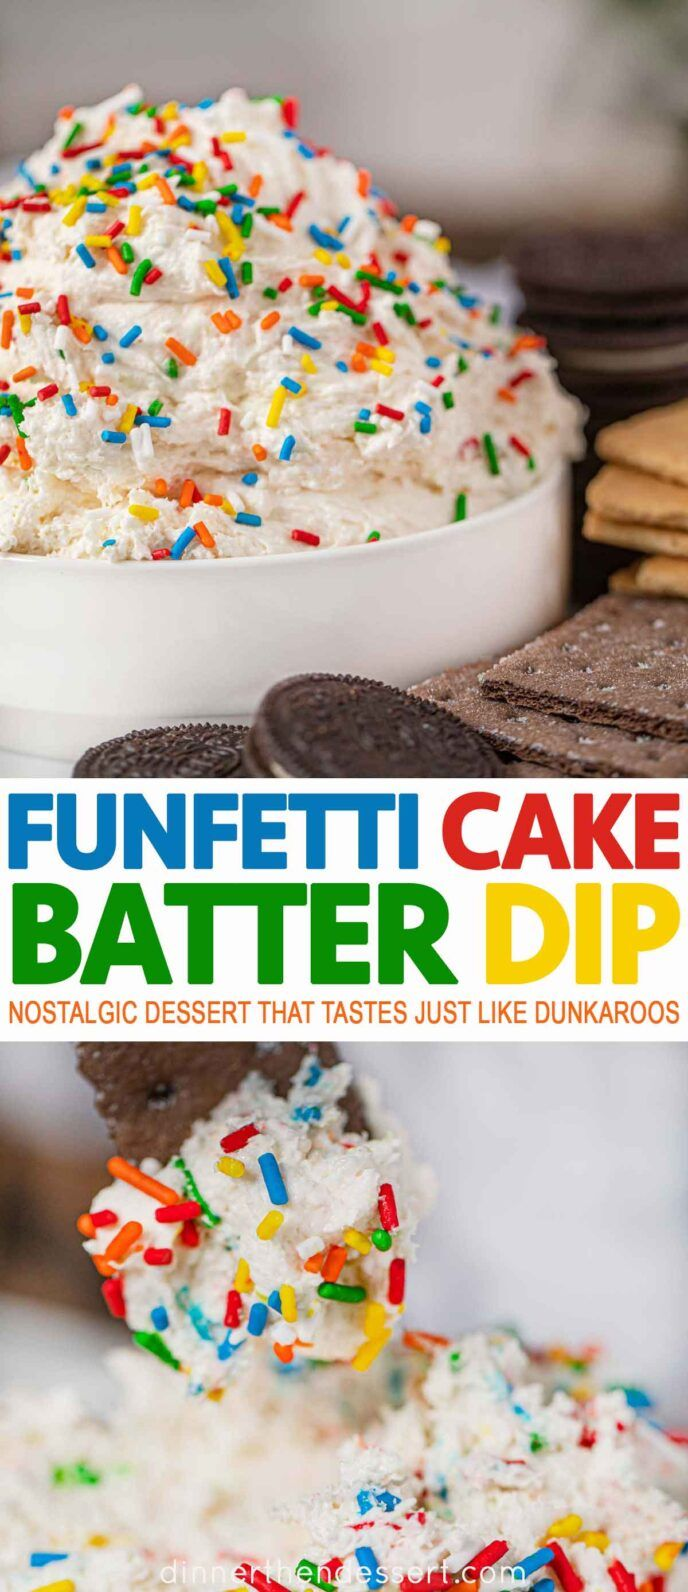 Funfetti Cake Batter Dip is an easy, nostalgic dessert dip made with cake mix, vanilla yogurt, Cool Whip, and sprinkles and it tastes just like Dunkaroos! #funfettidip #cakebatterdip #dessertdip #dunkaroodip #dunkaroos #dessert #dinnerthendessert #vanillayogurt